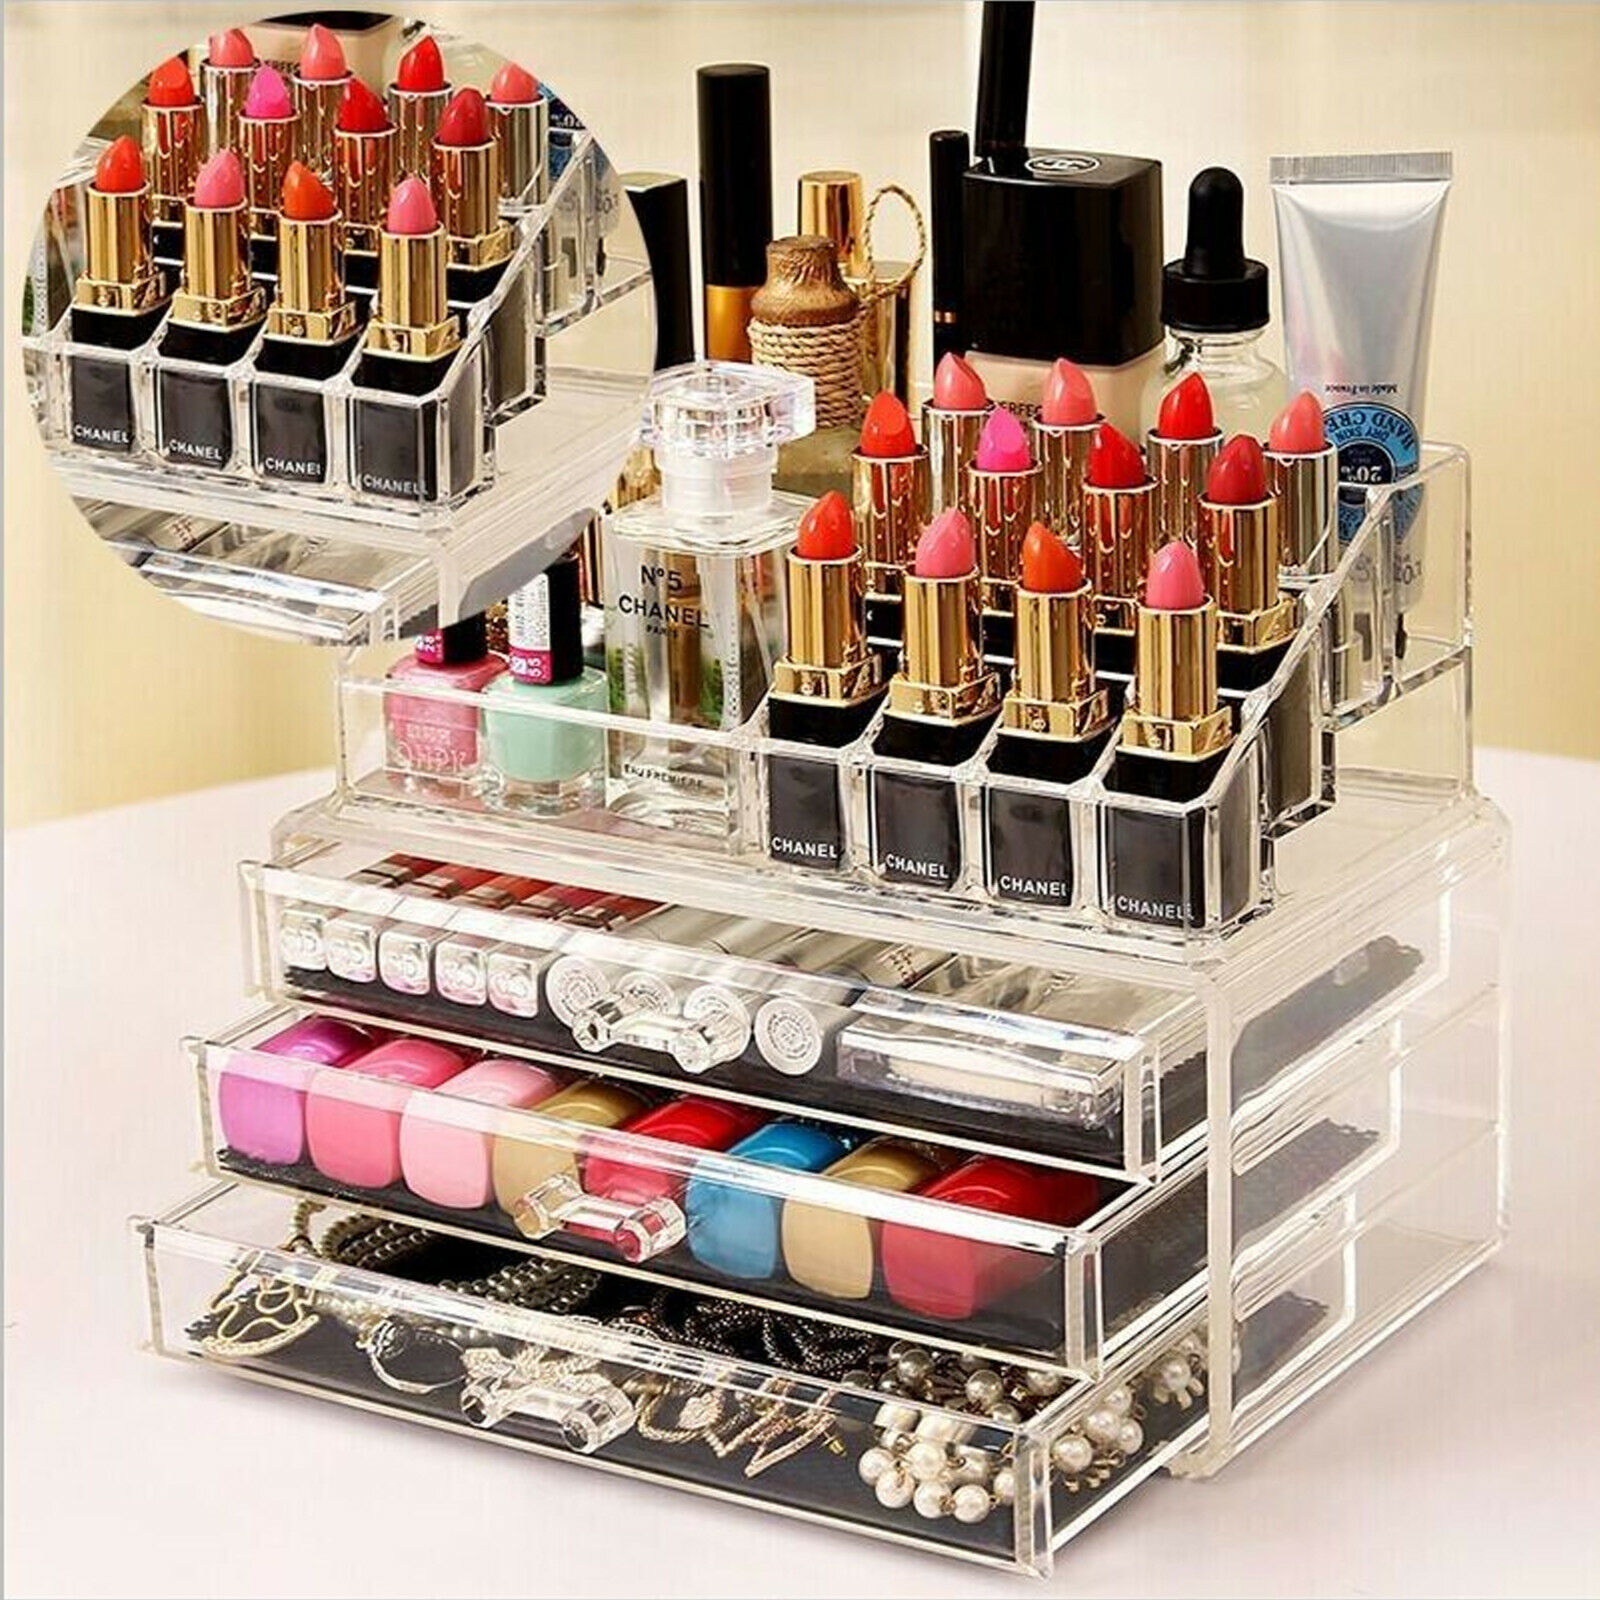 Jewellery - COSMETIC ORGANIZER ACRYLIC MAKEUP DRAWER HOLDER JEWELLERY CASE BOX STORAGE CLEAR